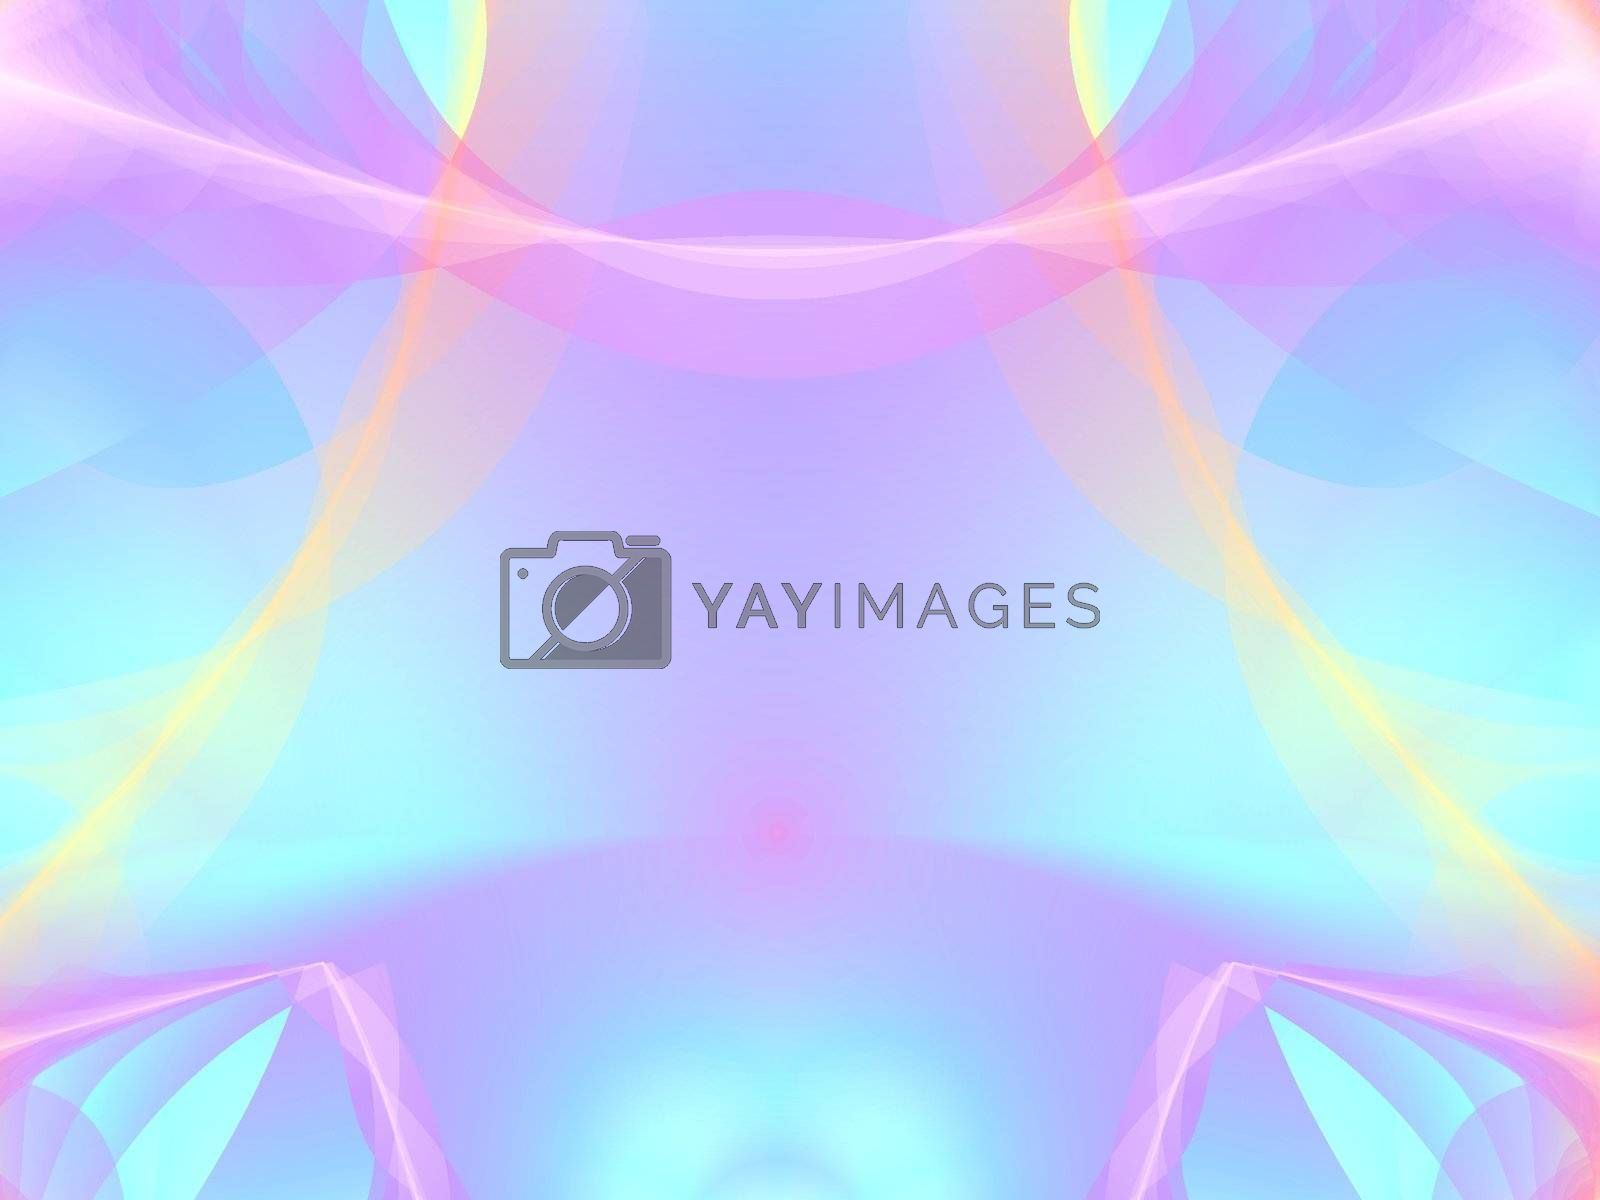 abstract soft pinkd and blue colored background